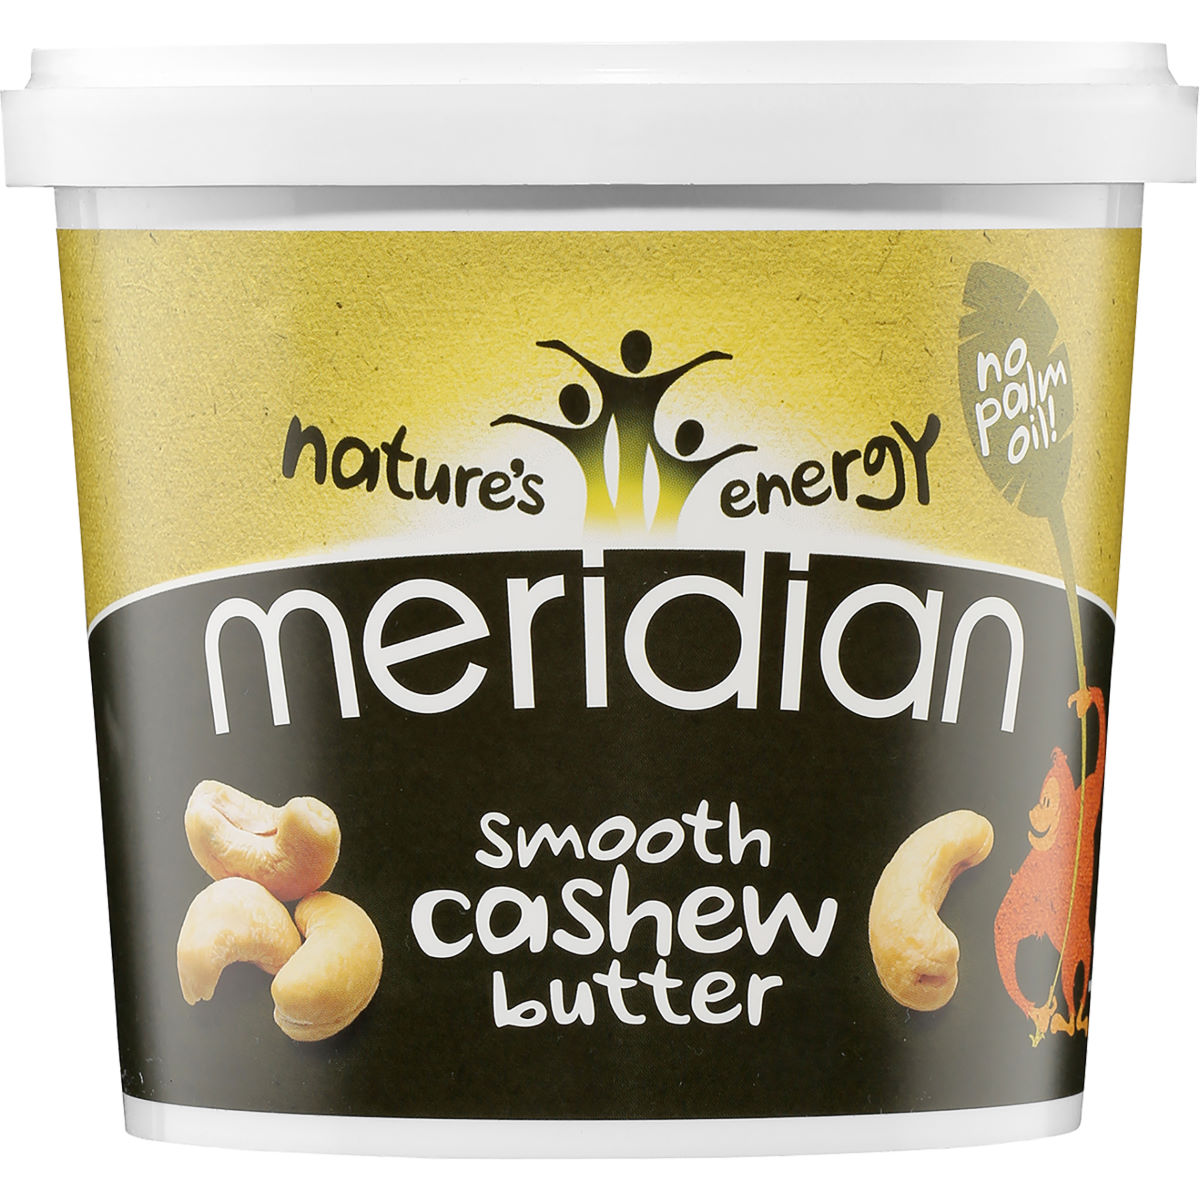 Meridian Meridian Smooth Cashew Butter (1000g Tub)   Nut Butter